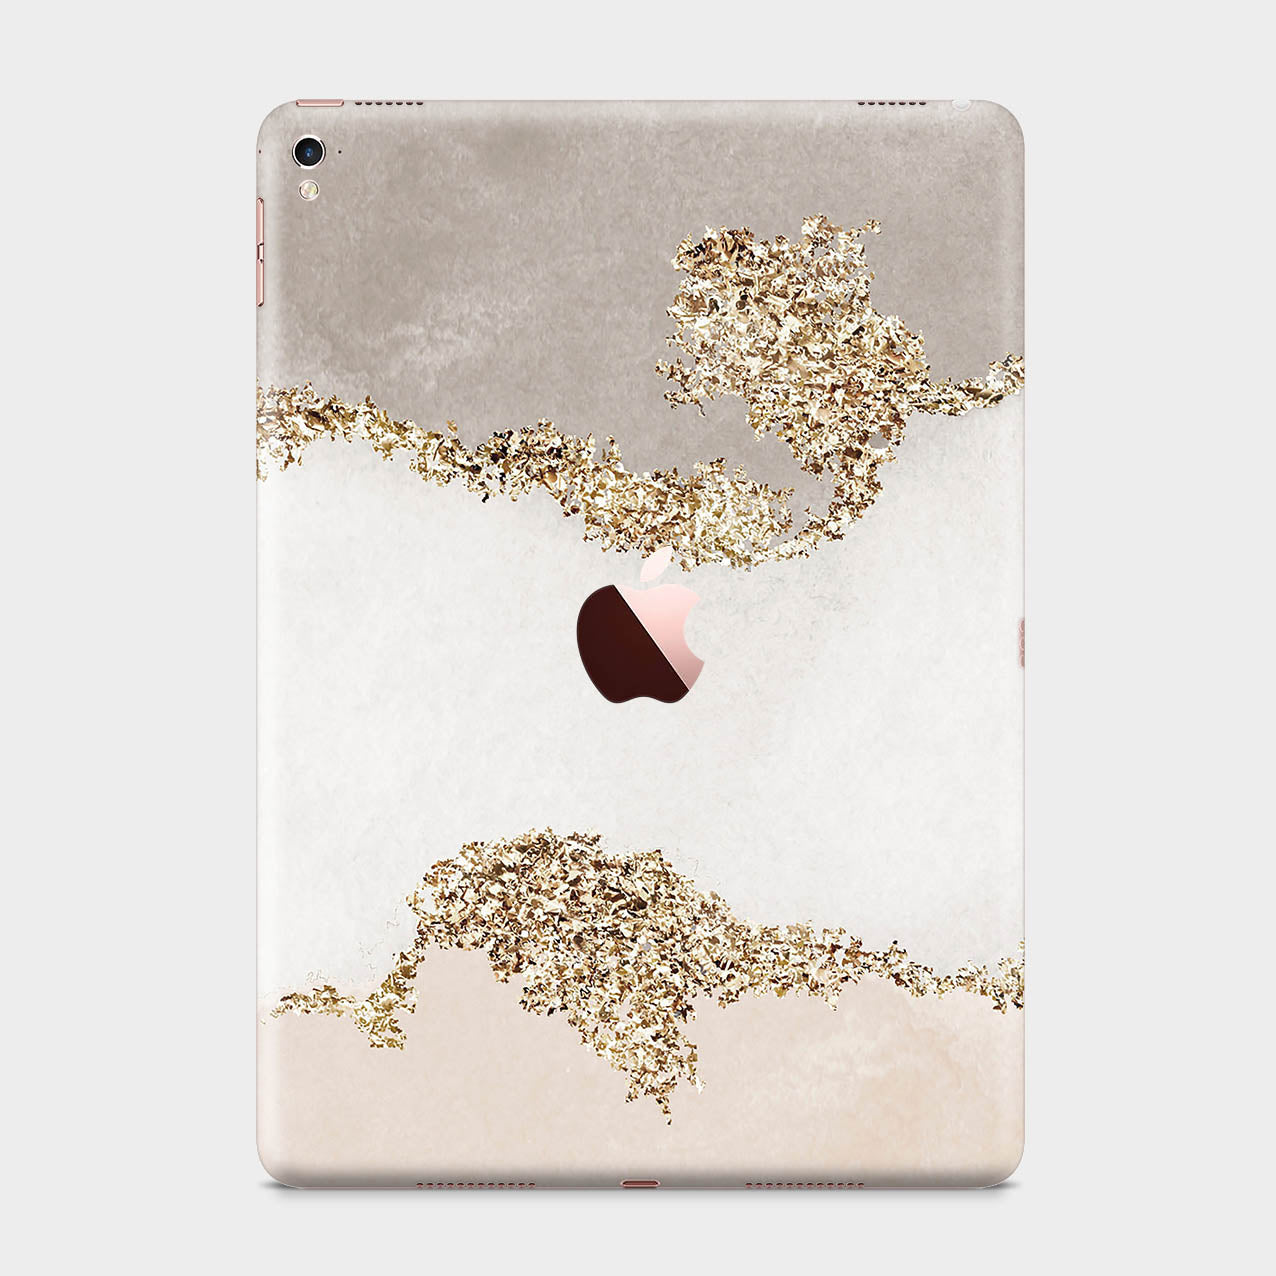 GOLDEN COAST iPad Air 2 skins | Pigtou